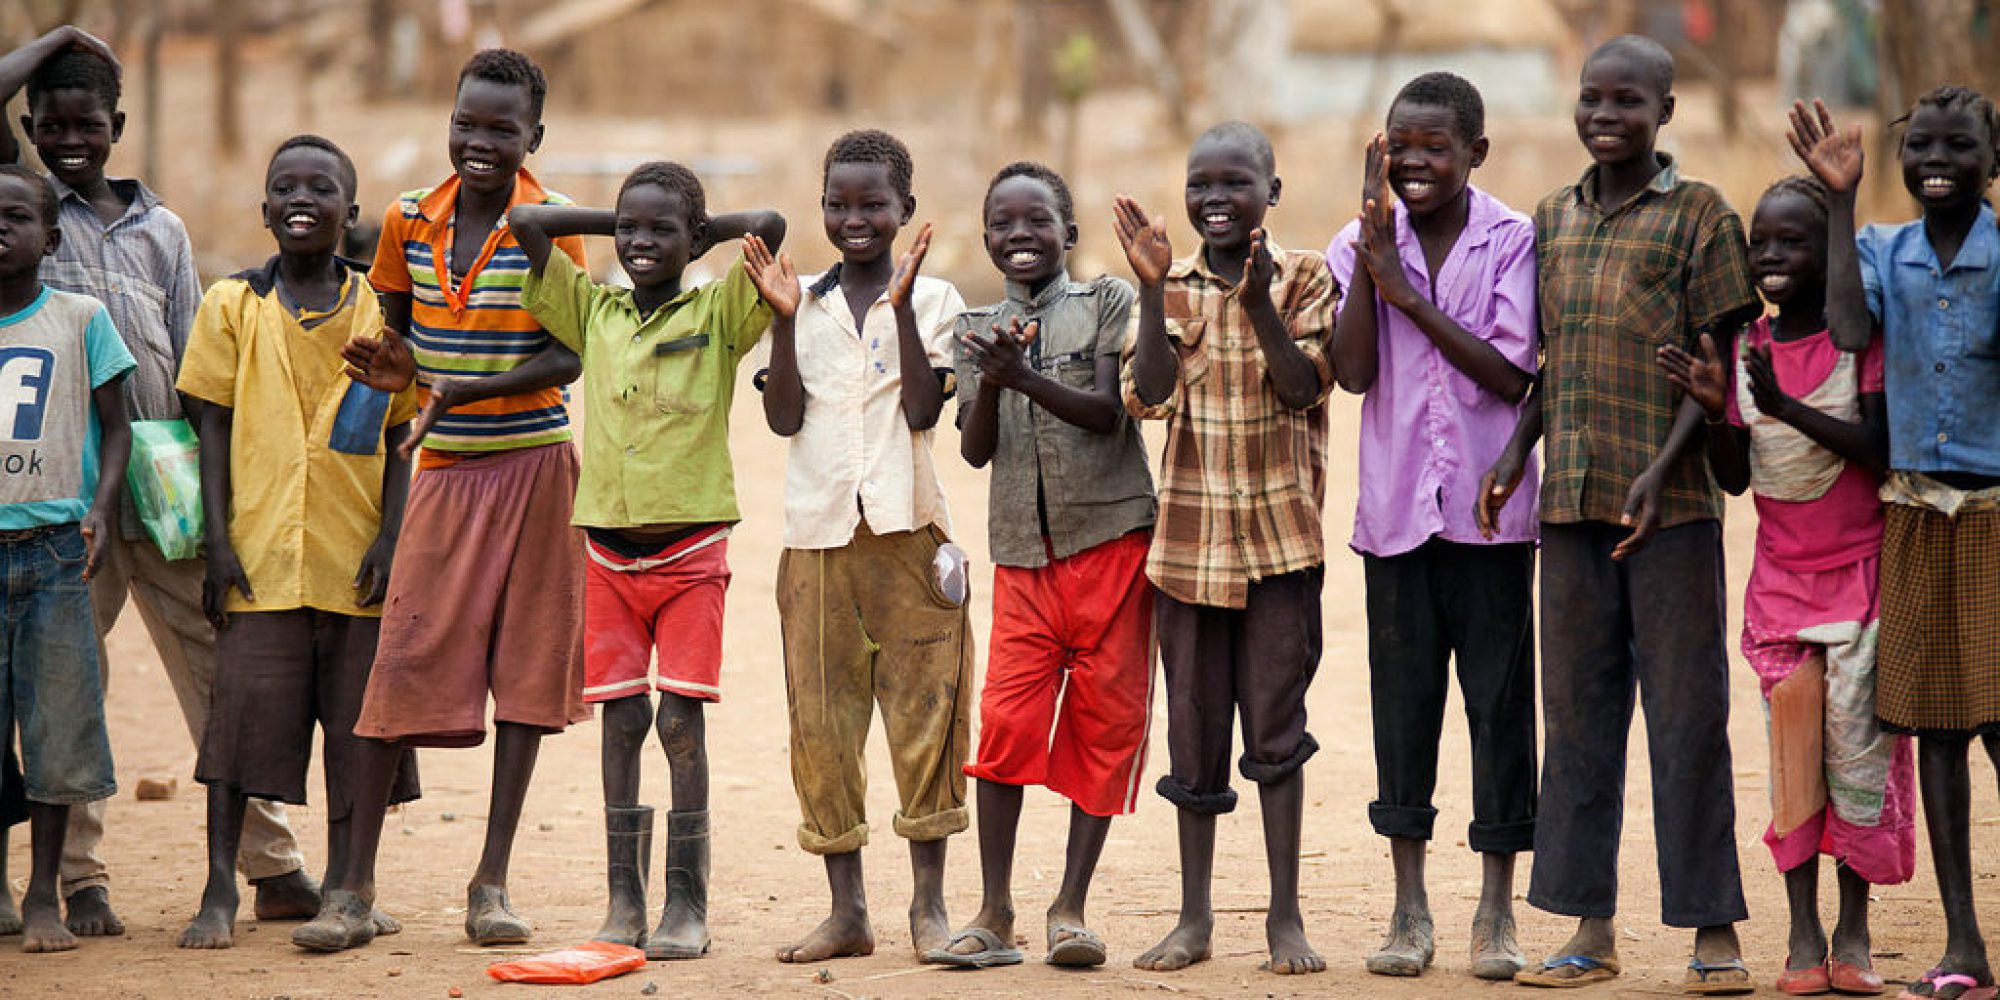 Children assemble before going to class at the Offra school, in Maban, South Sudan.